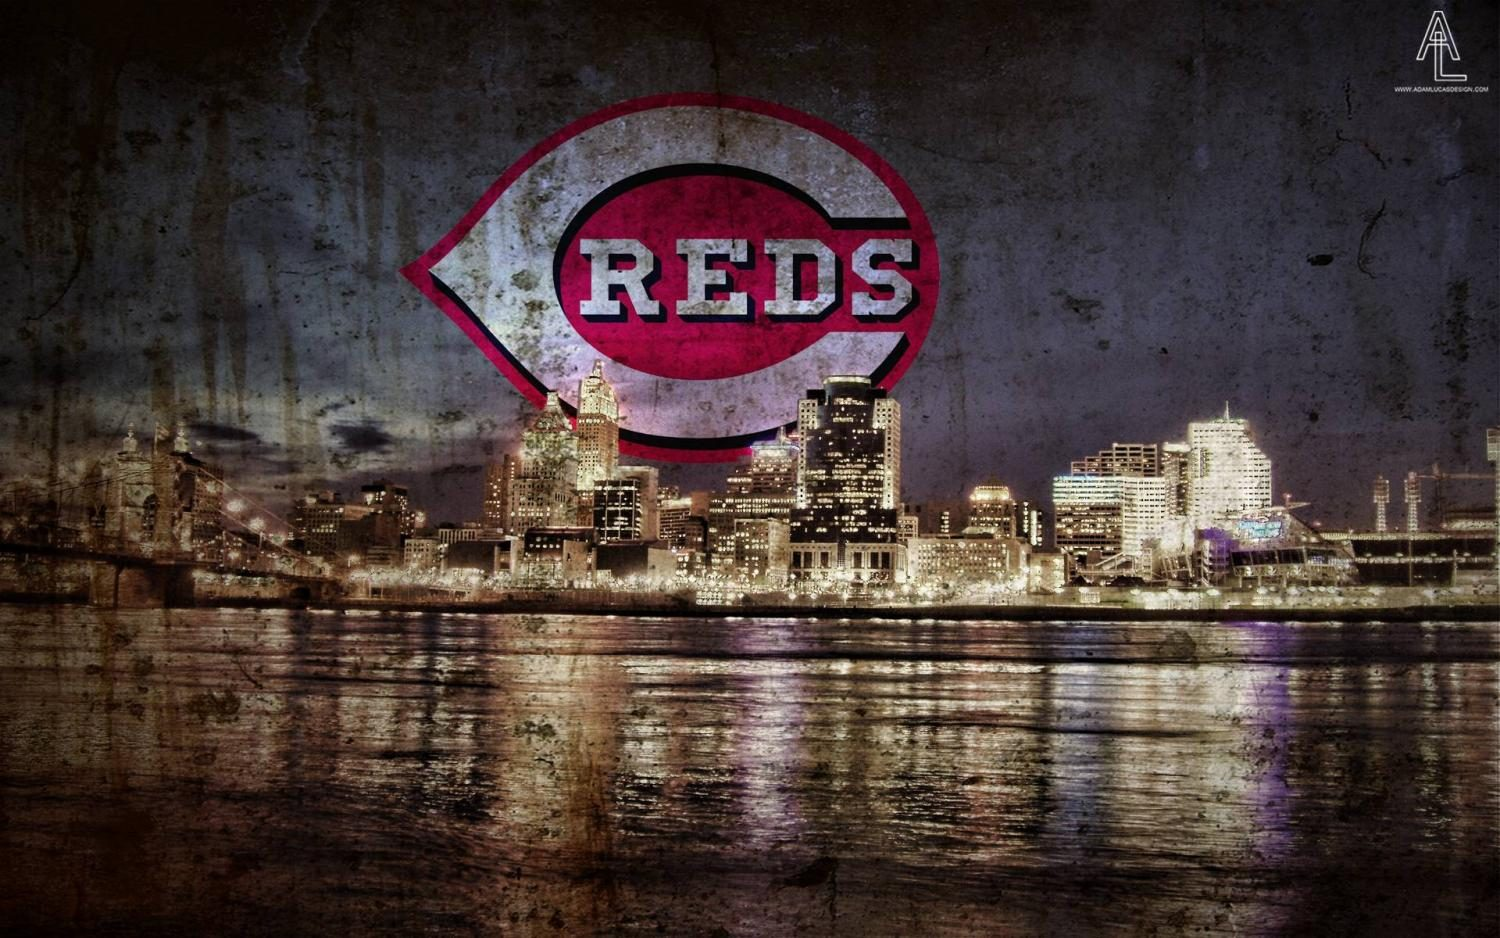 Cincinnati Reds are shinning